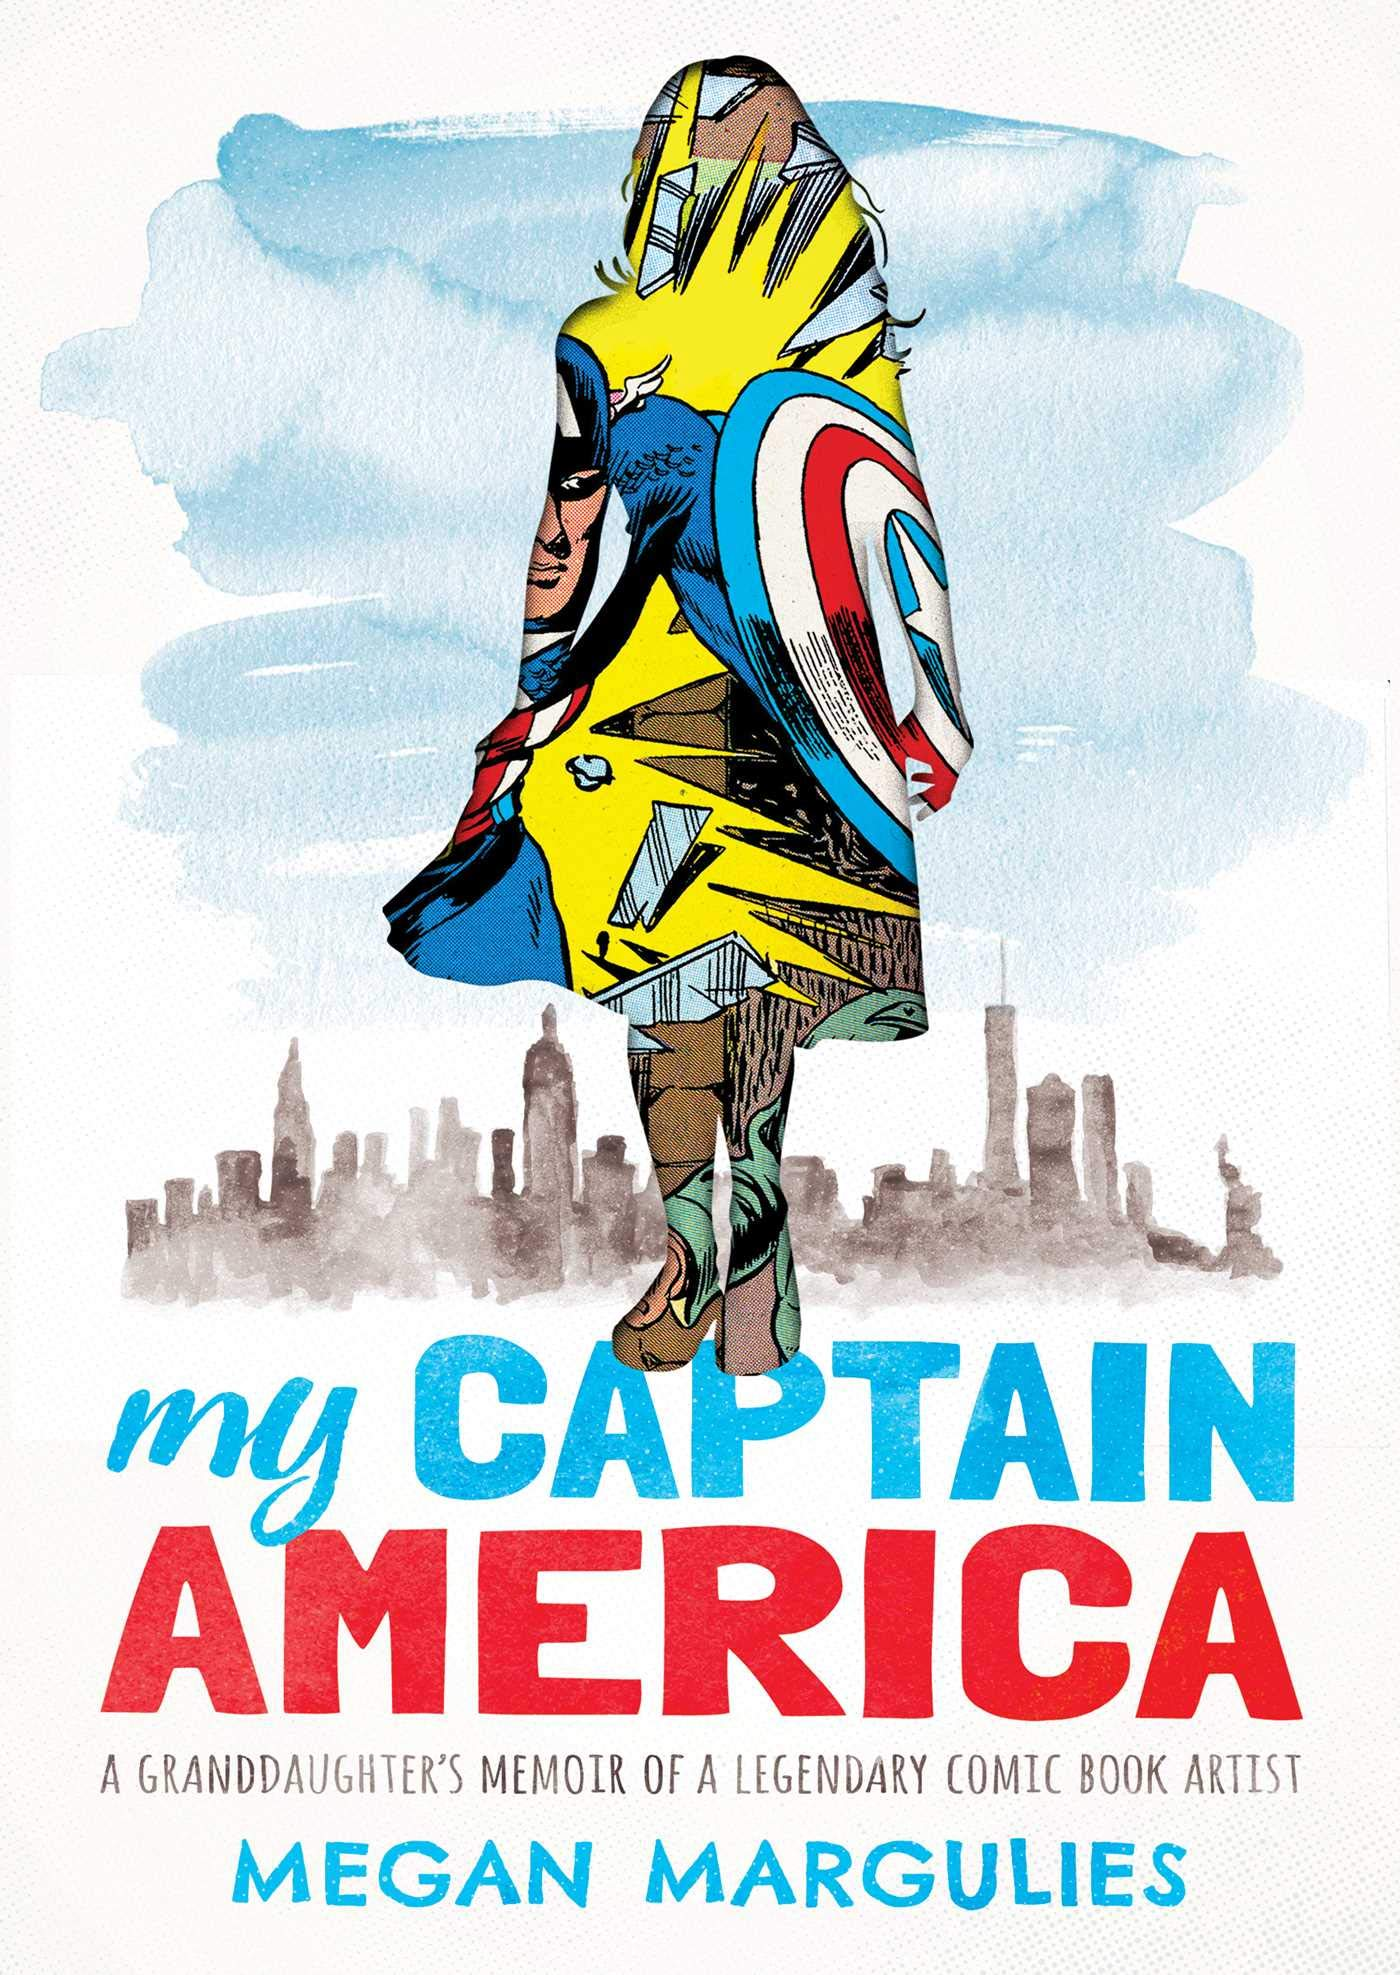 My Captain America: A Granddaughter's Memoir of a Legendary Comic Book Artist